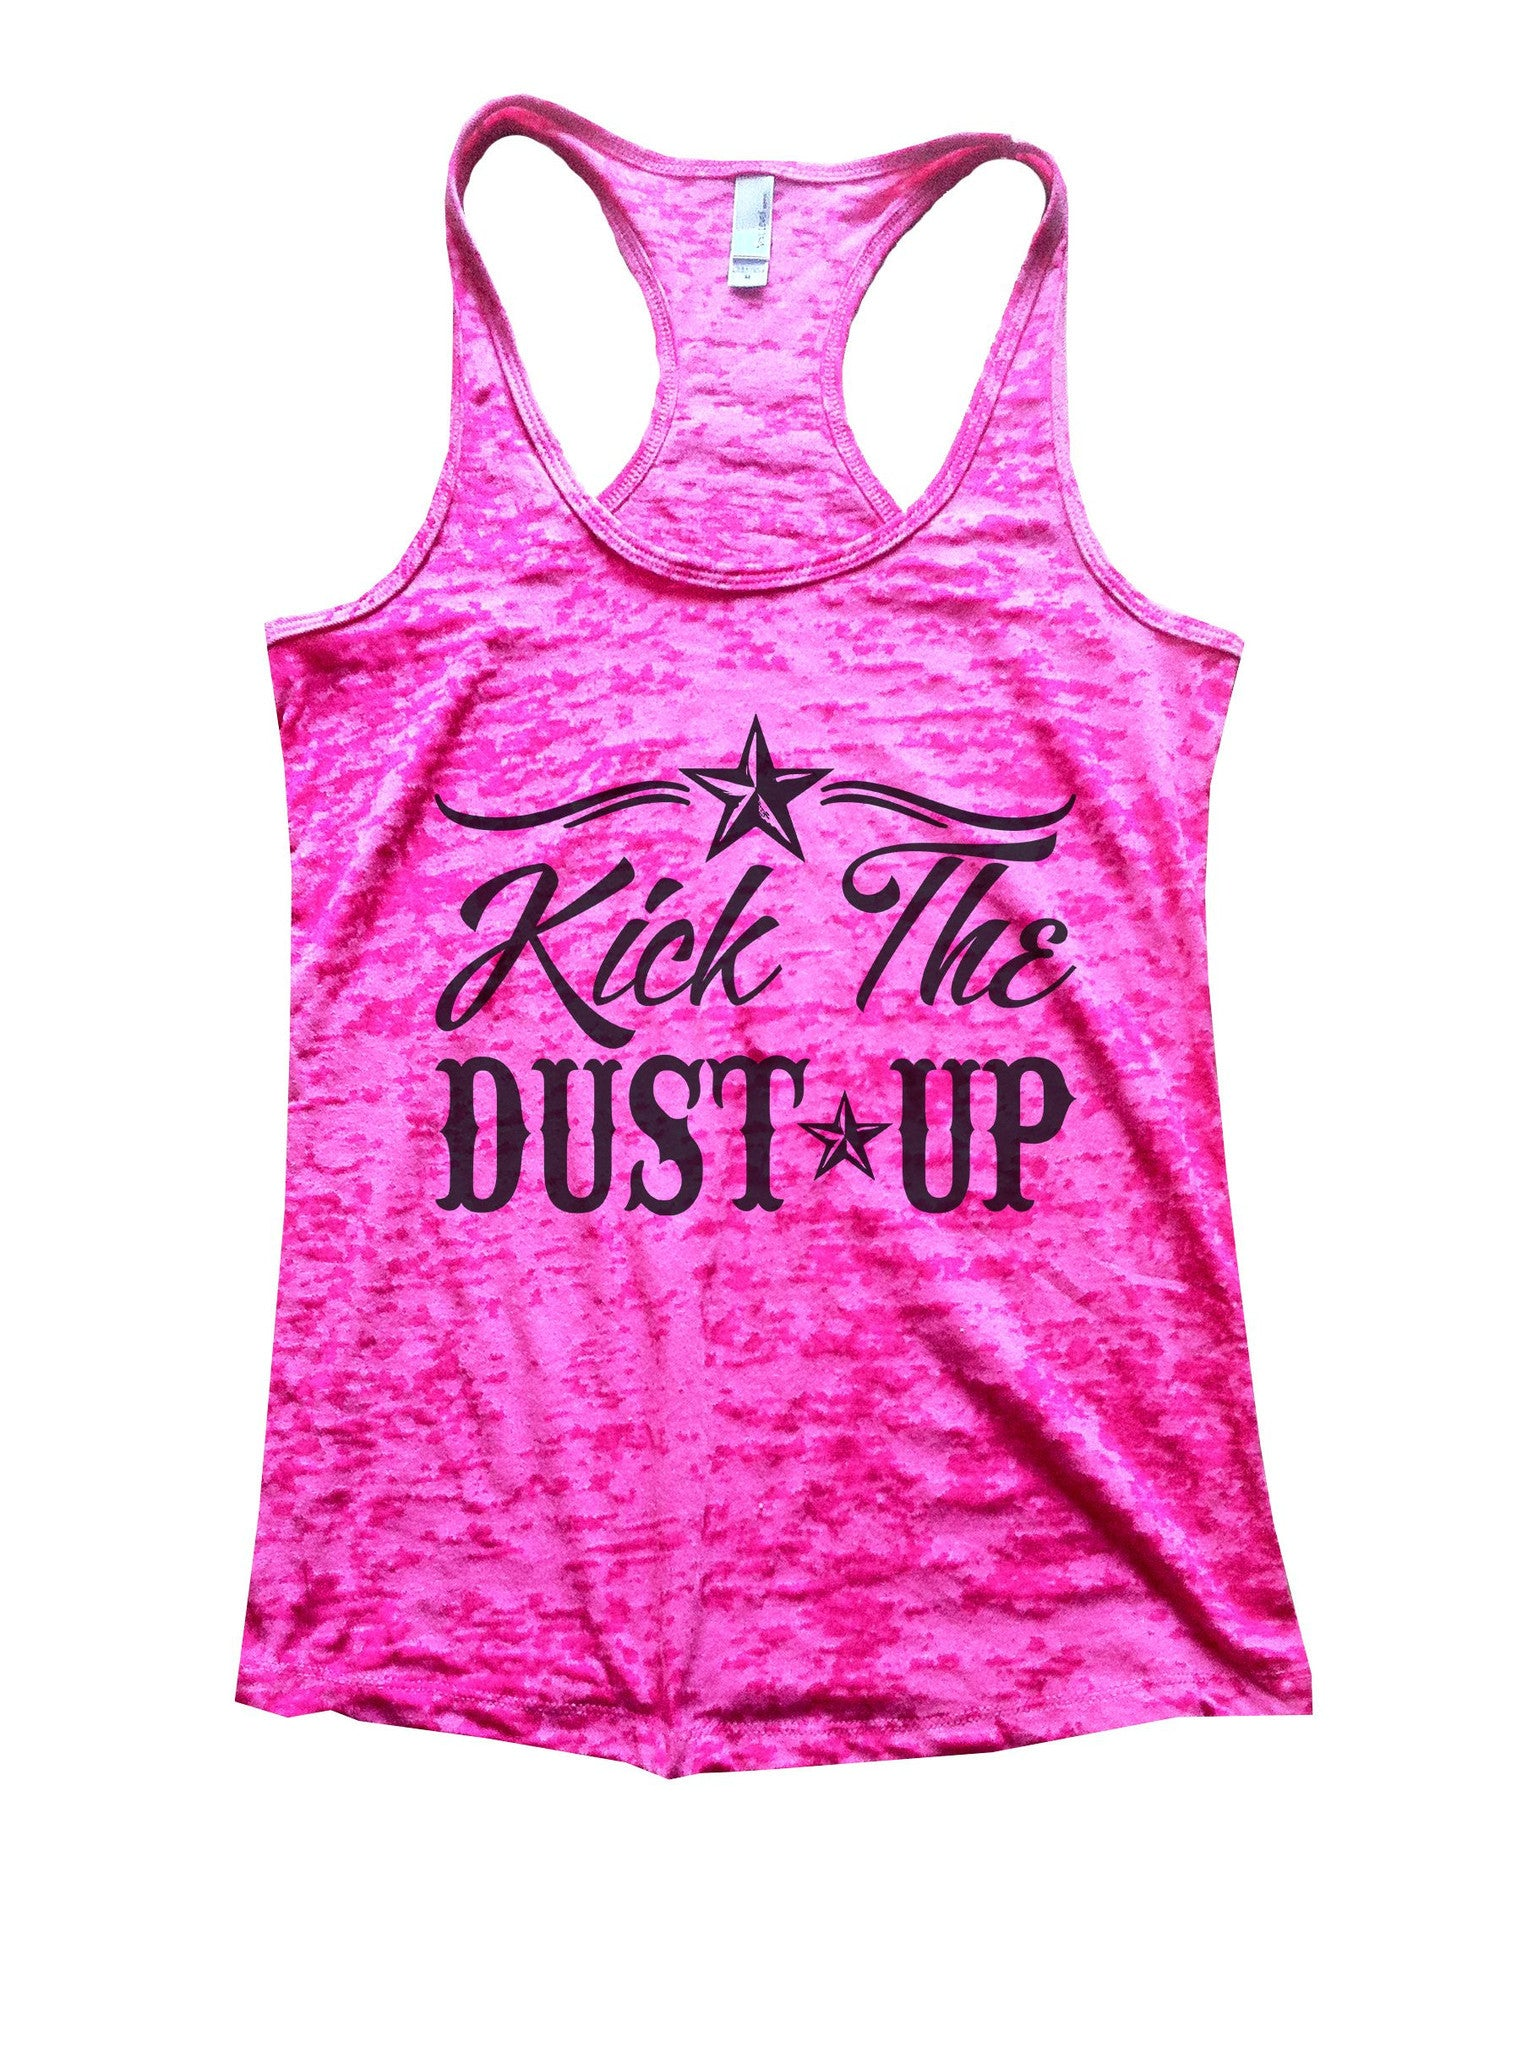 Kick The Dust Up Burnout Tank Top By BurnoutTankTops.com - 1028 - Funny Shirts Tank Tops Burnouts and Triblends  - 7